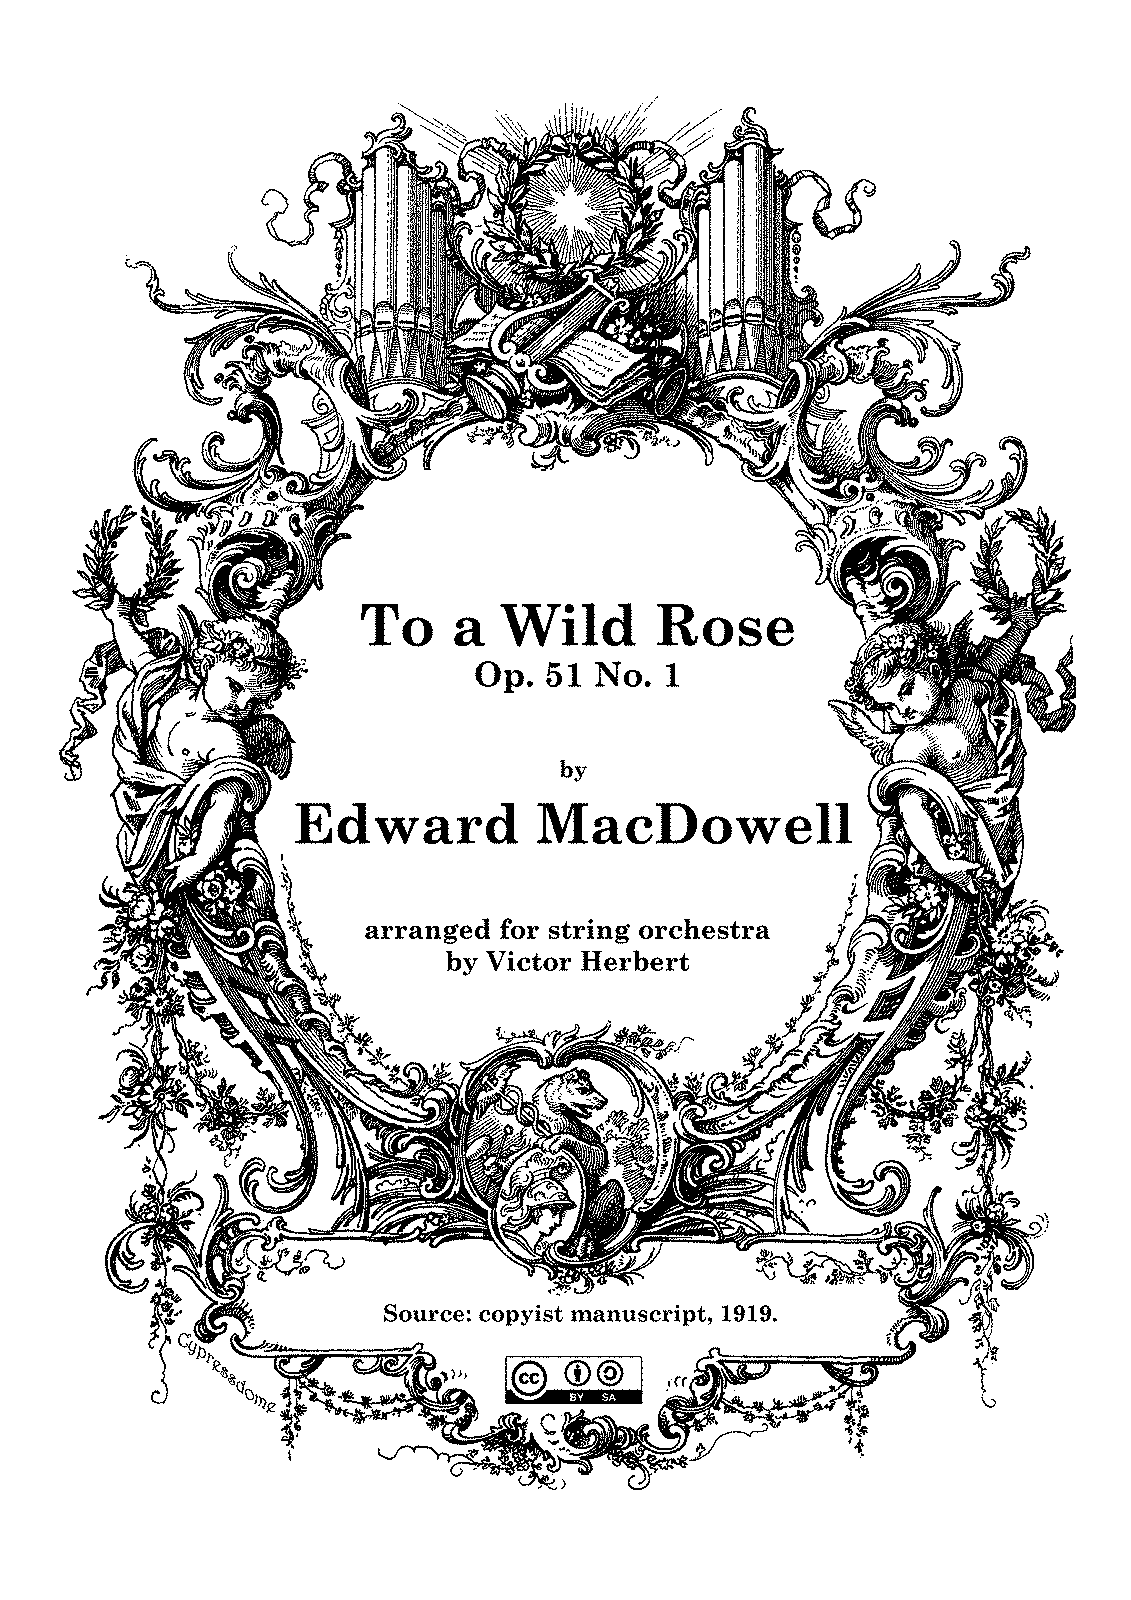 PMLP08342-EMacdowell To a Wild Rose stringorch.pdf